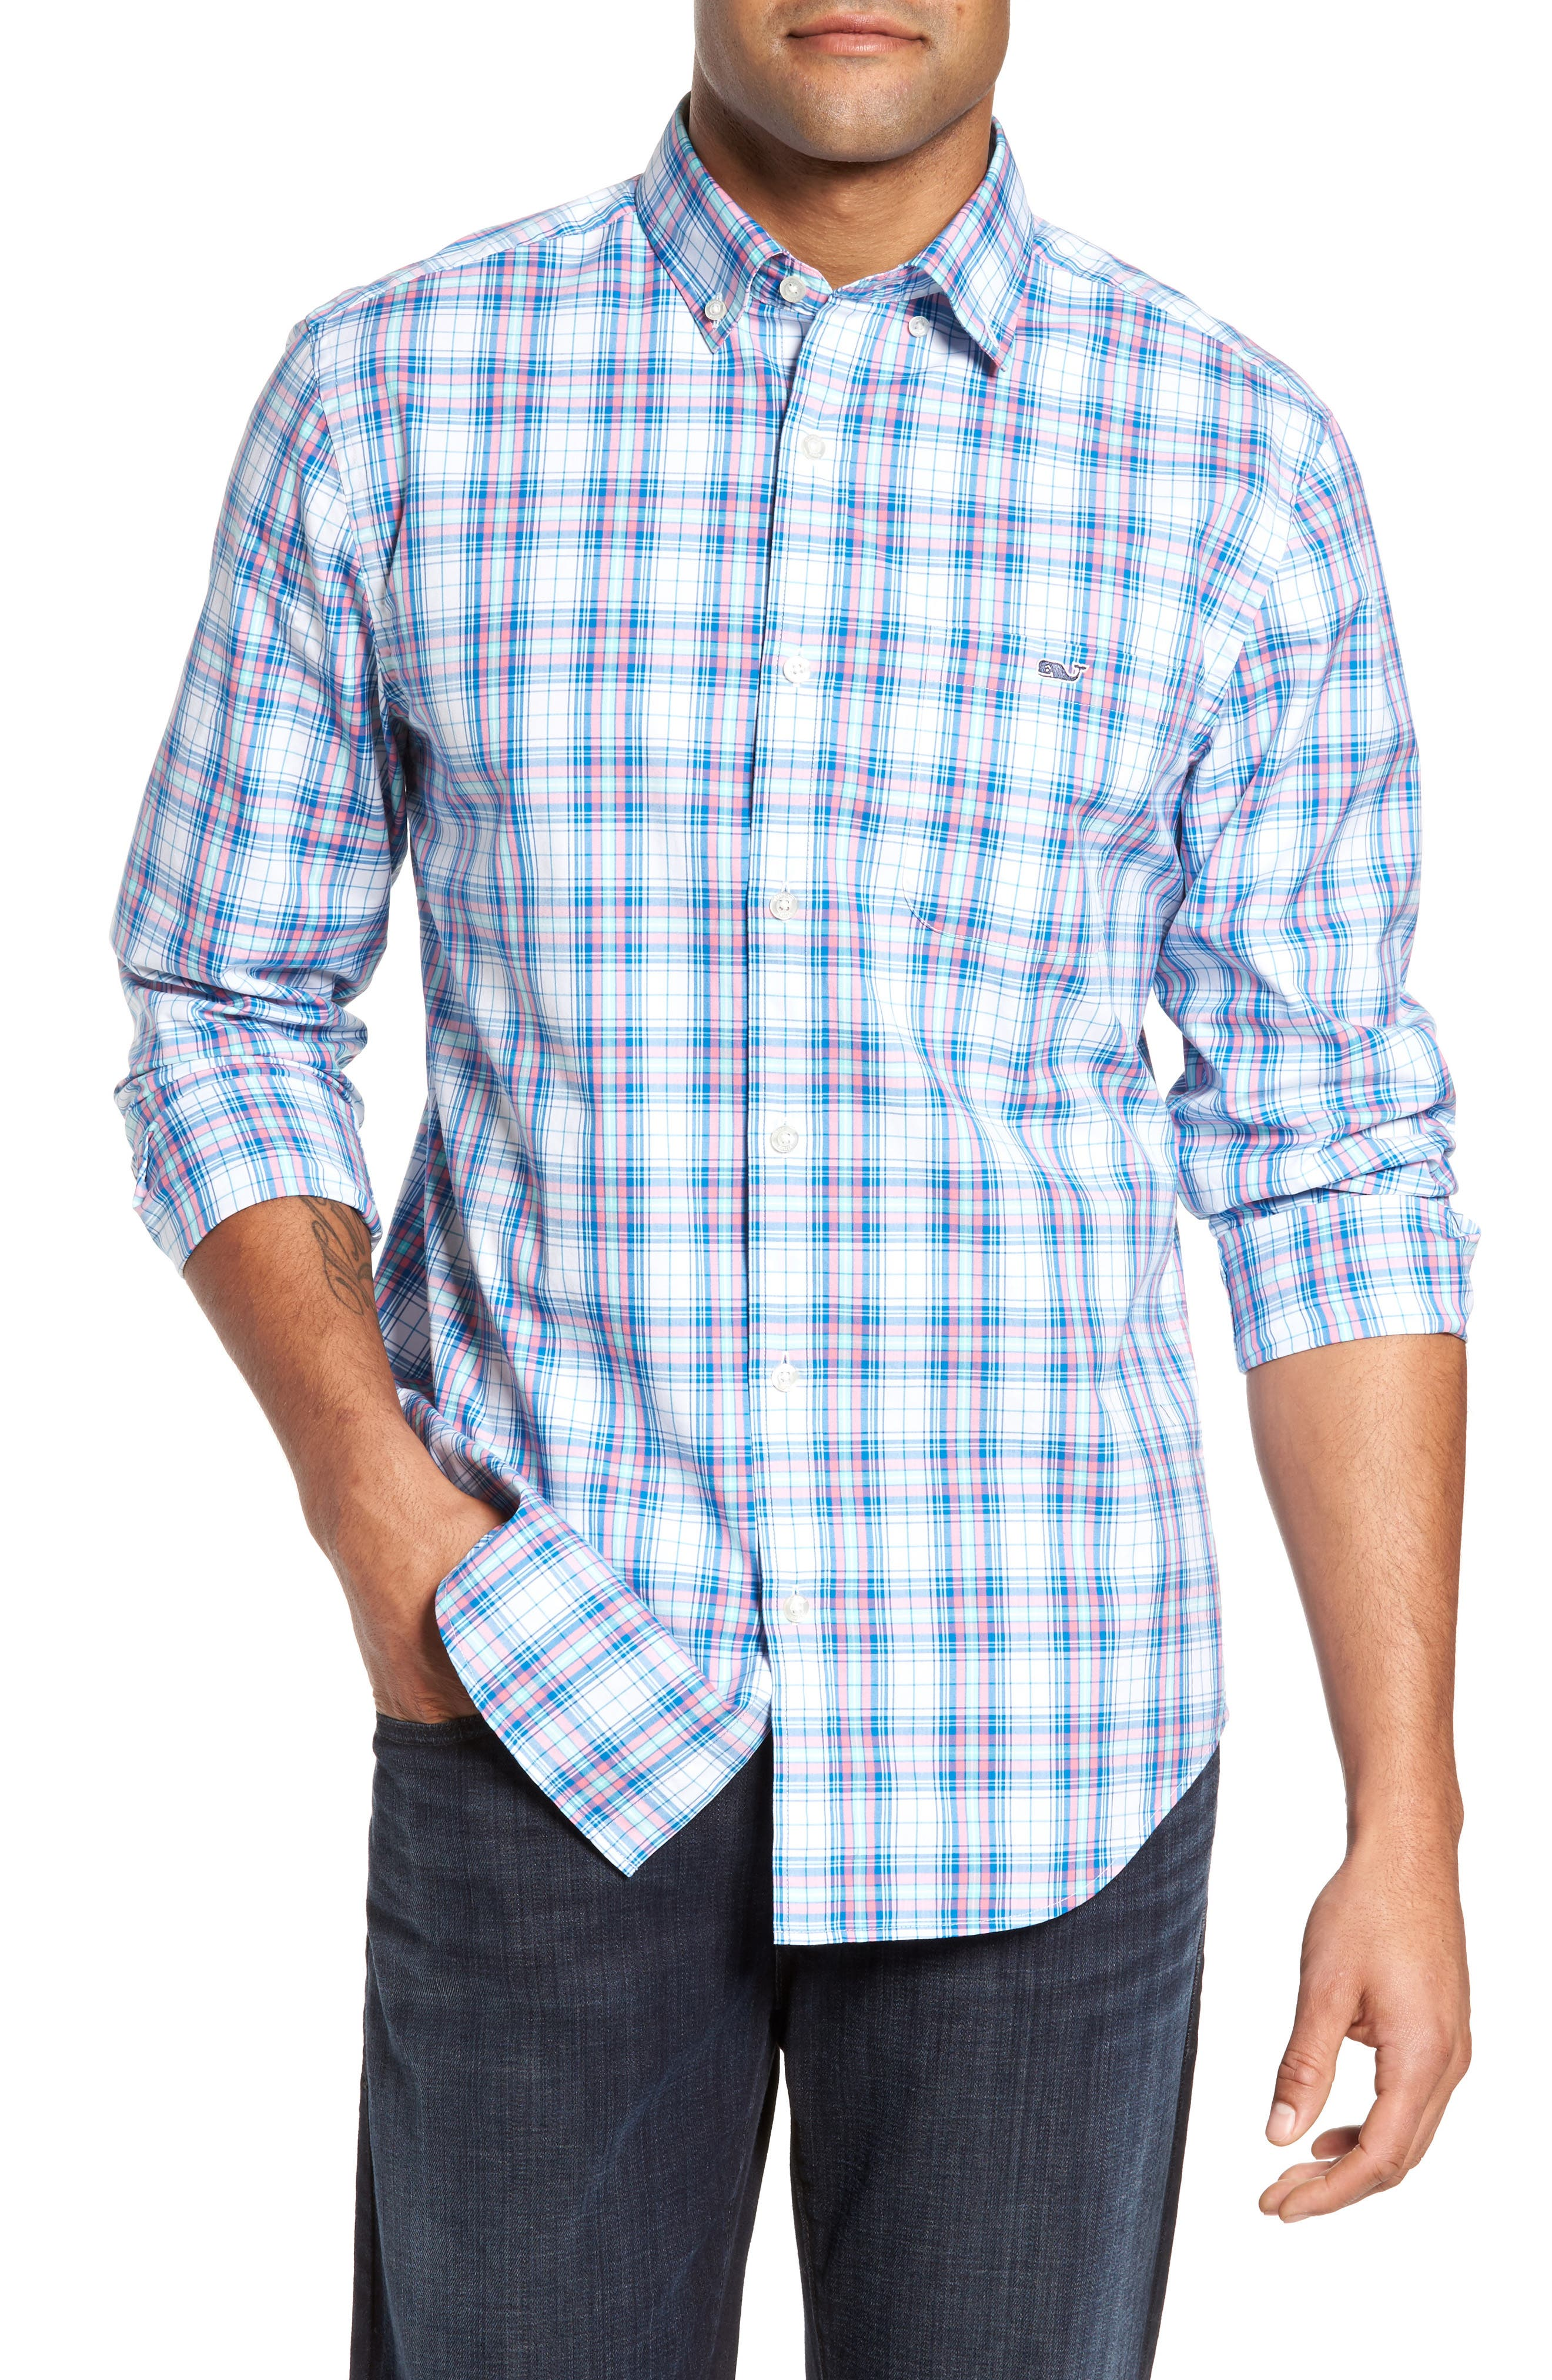 Tucker Sunset Pines Classic Fit Plaid Sport Shirt,                         Main,                         color, Bahama Breeze